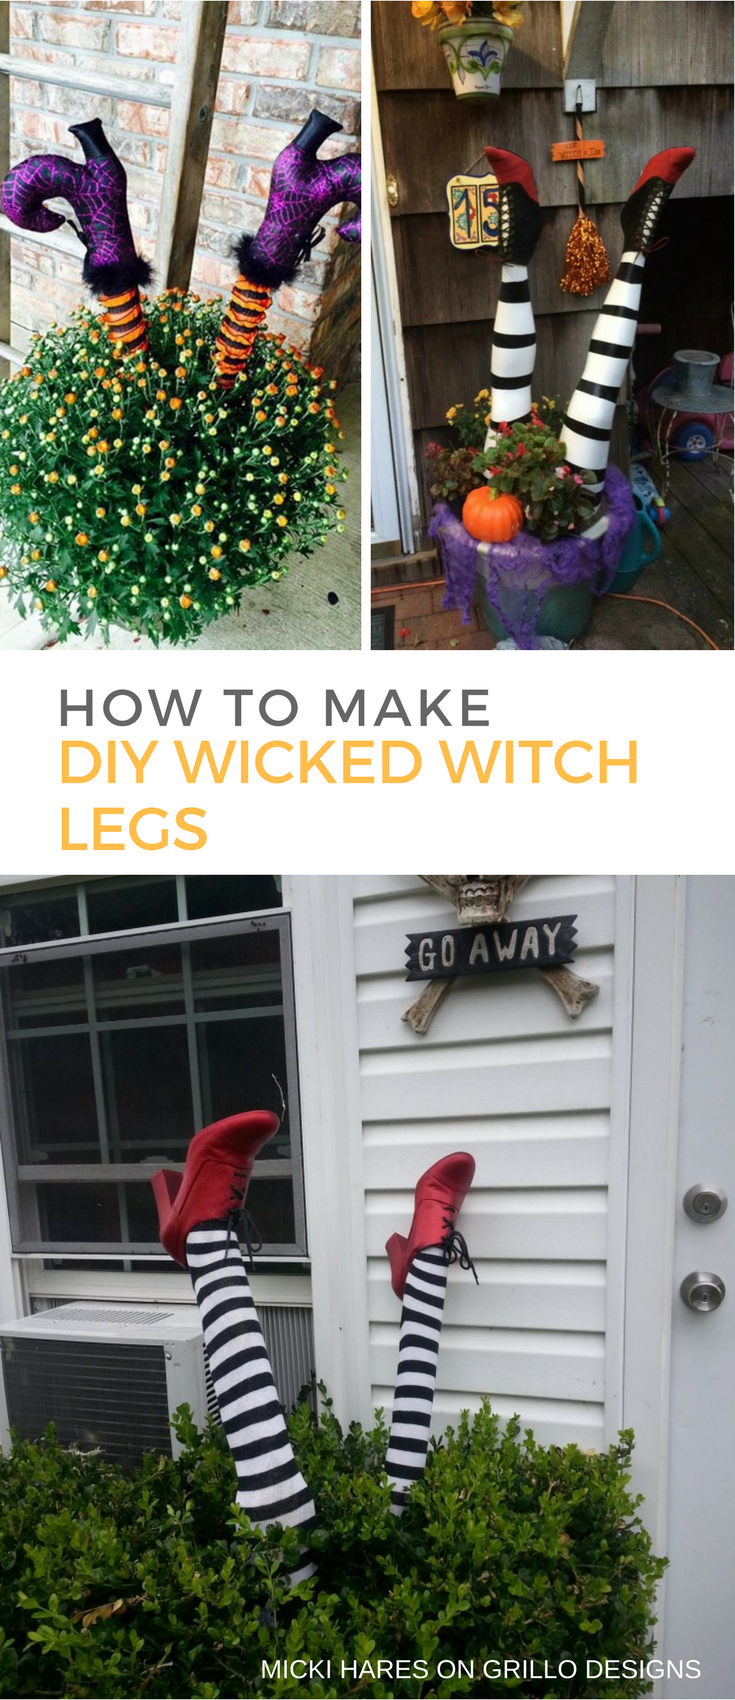 How To Make Wicked Witch Legs Grillo Designs